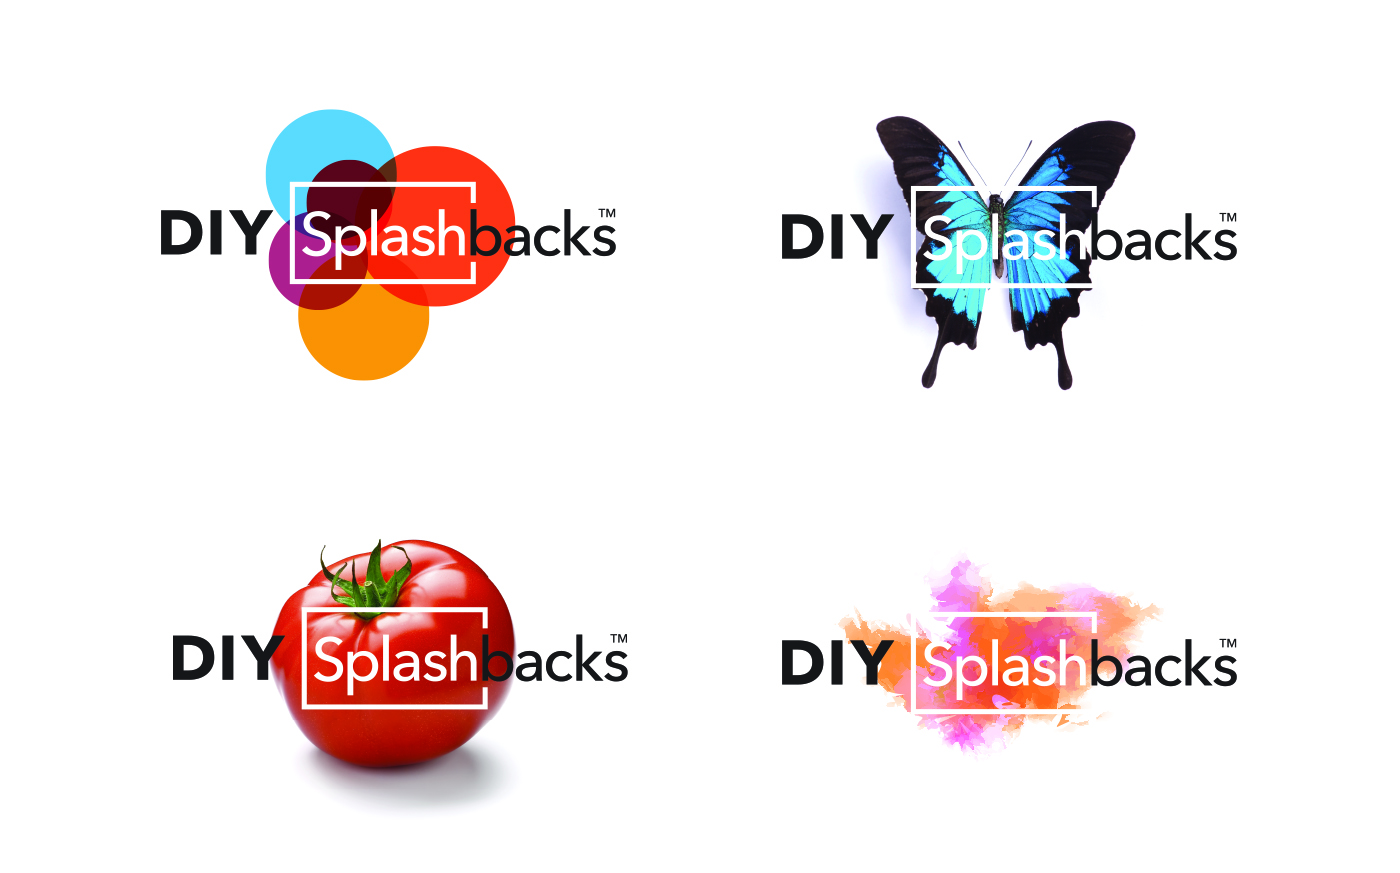 diy-splashbacks_logos-1